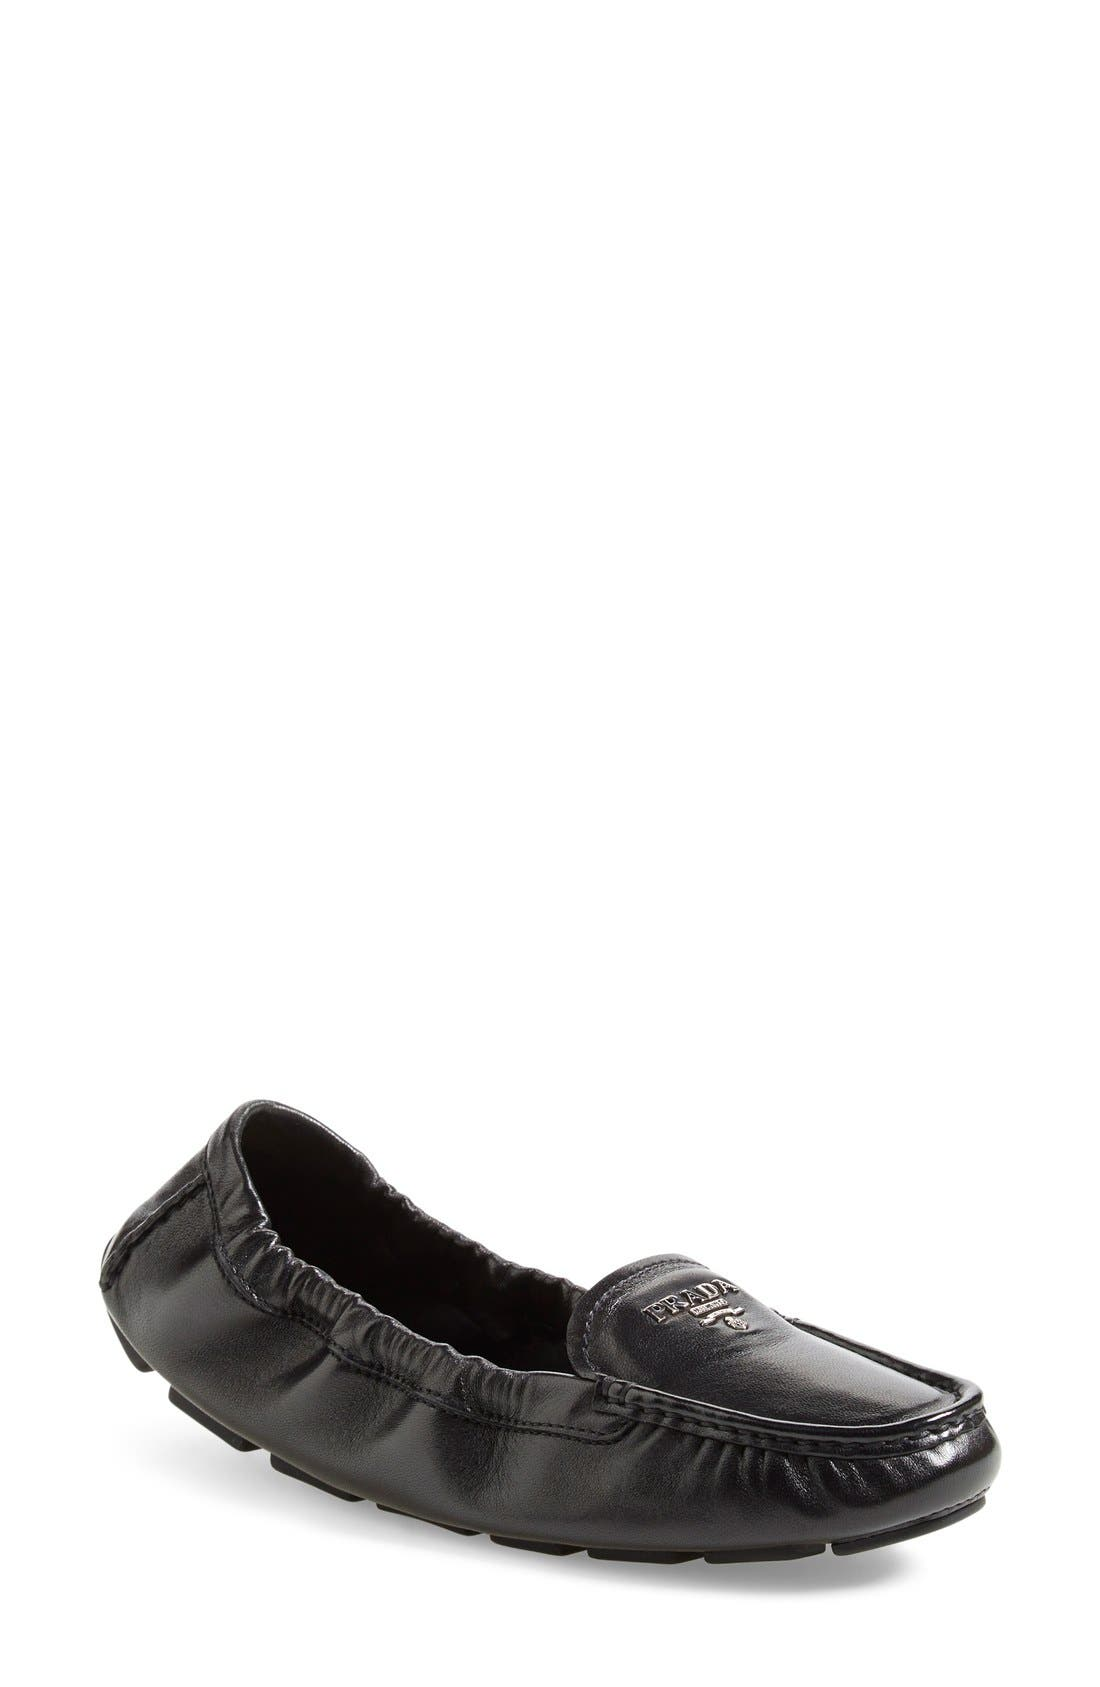 'Scrunch' Driving Loafer,                             Main thumbnail 1, color,                             Black Leather